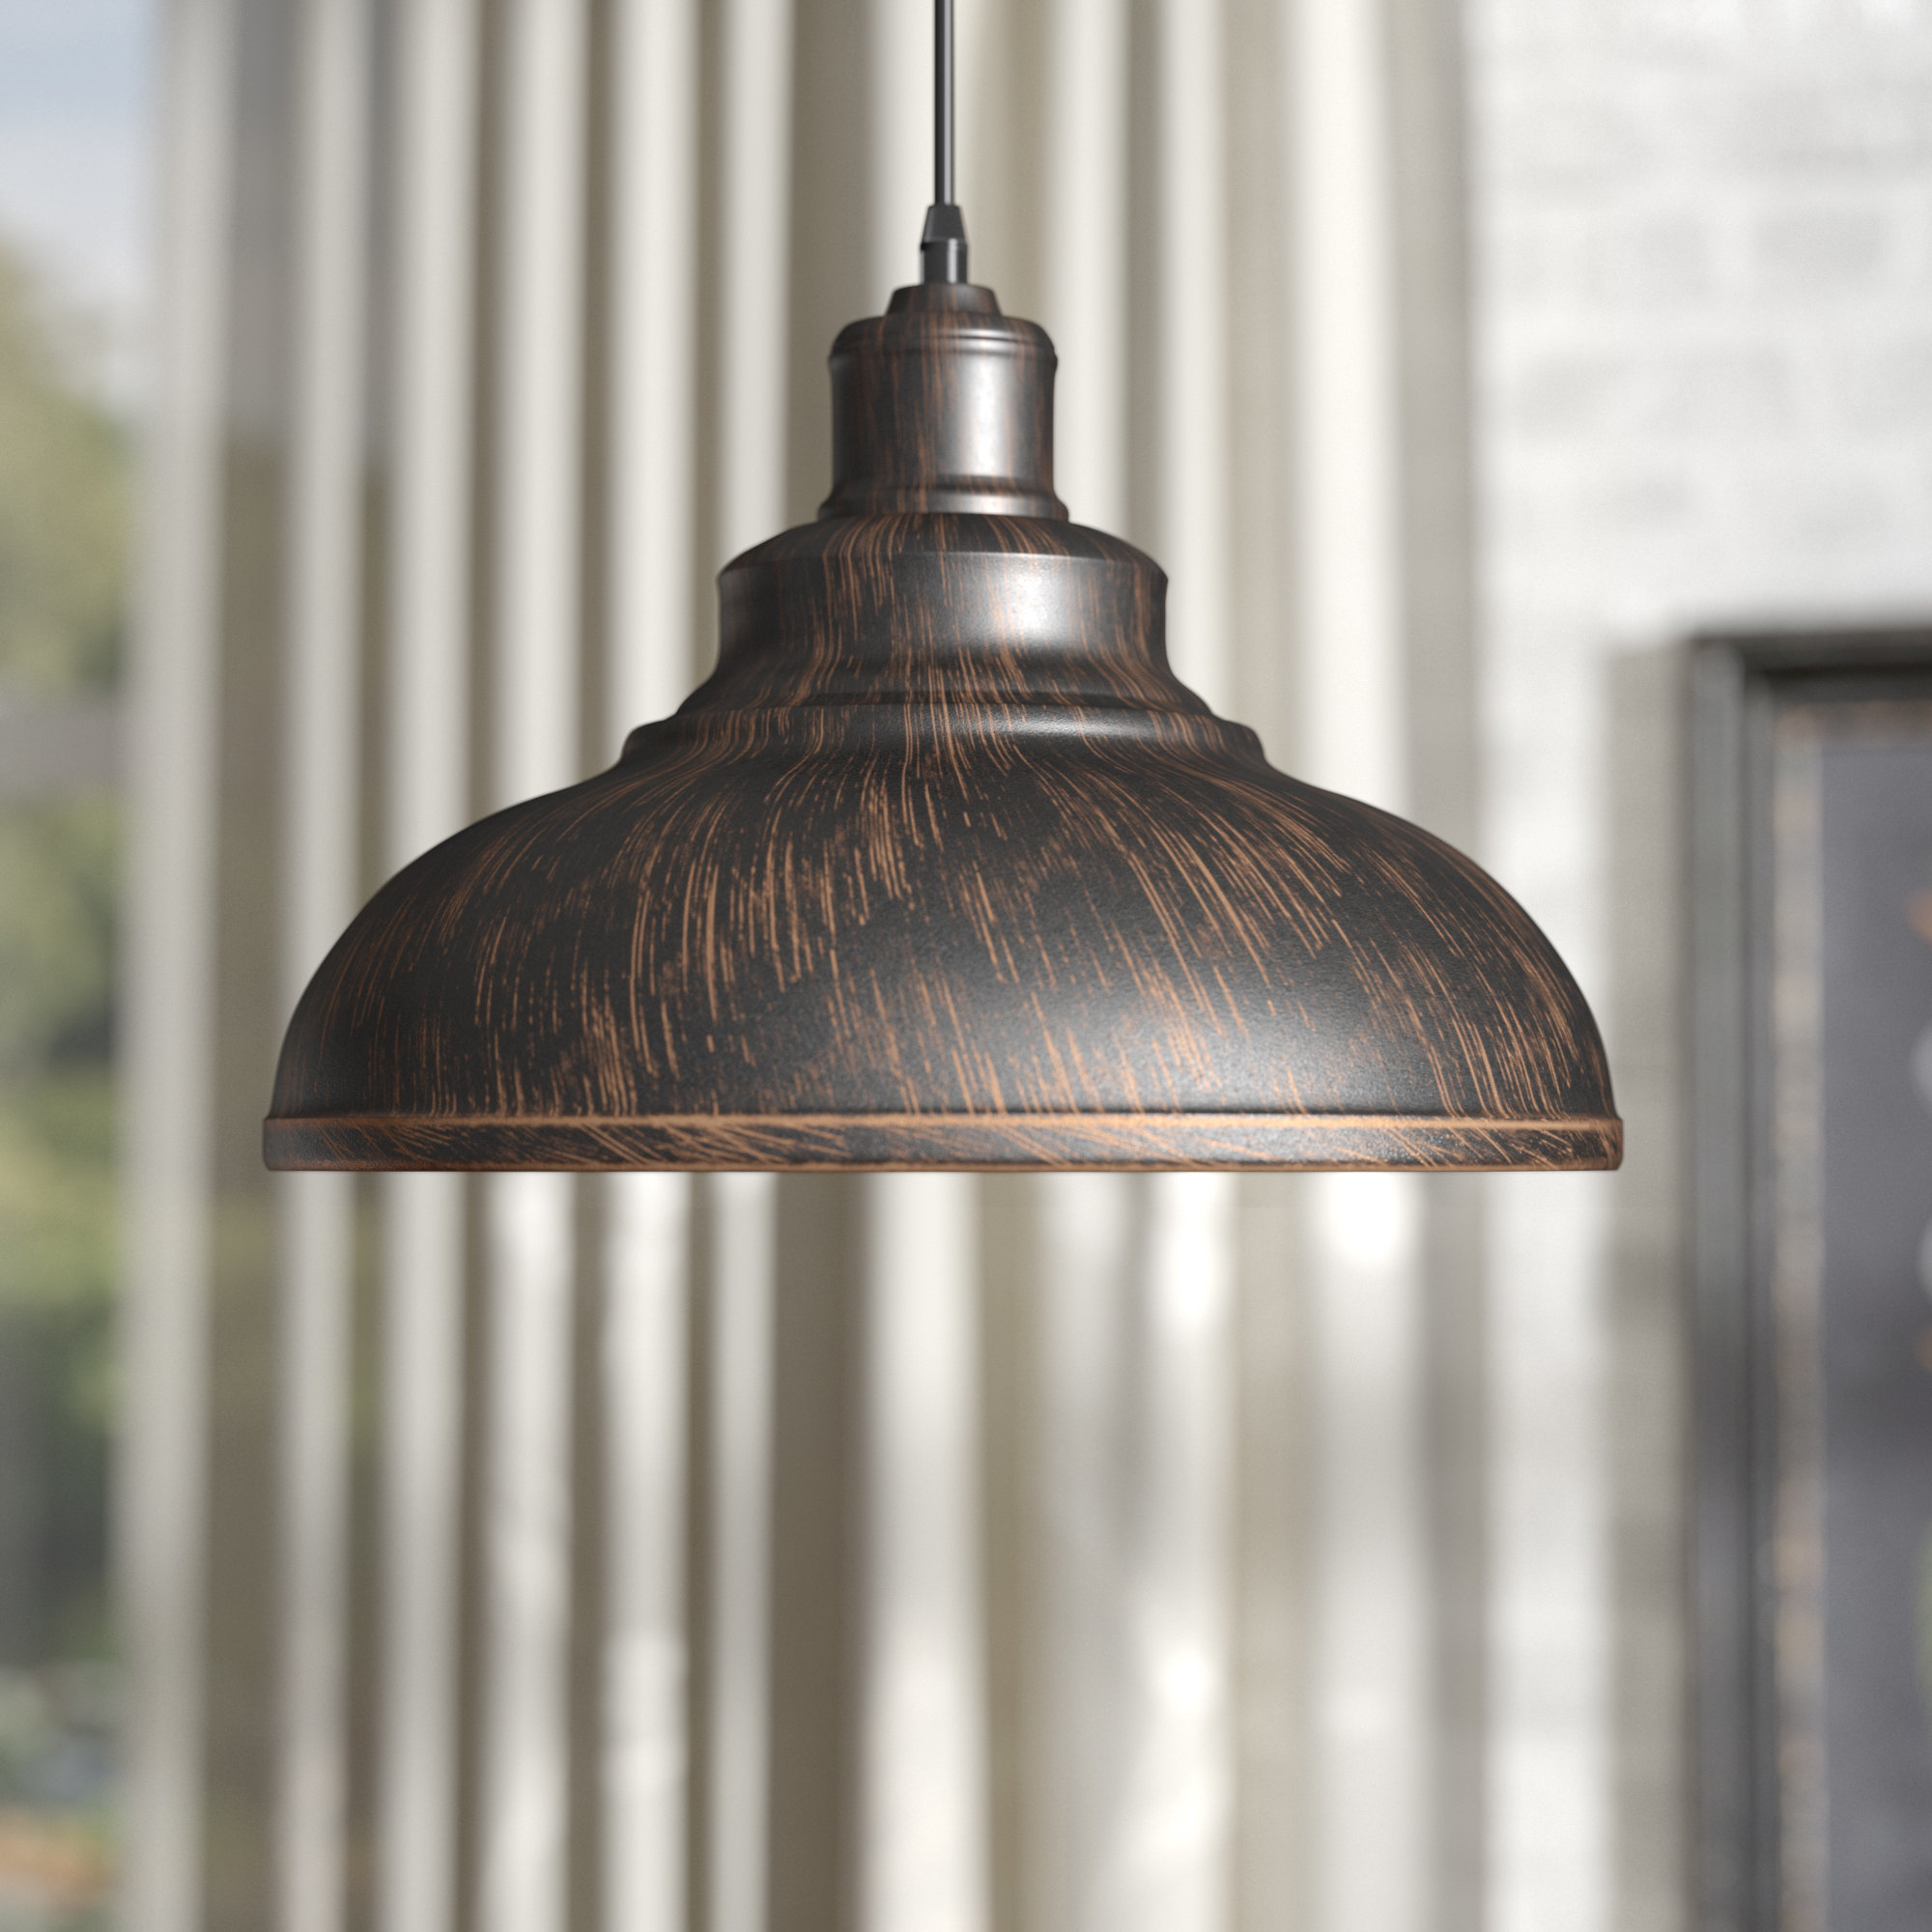 Abordale 1 Light Single Dome Pendants Throughout Most Current Estella 1 Light Dome Pendant (View 12 of 25)